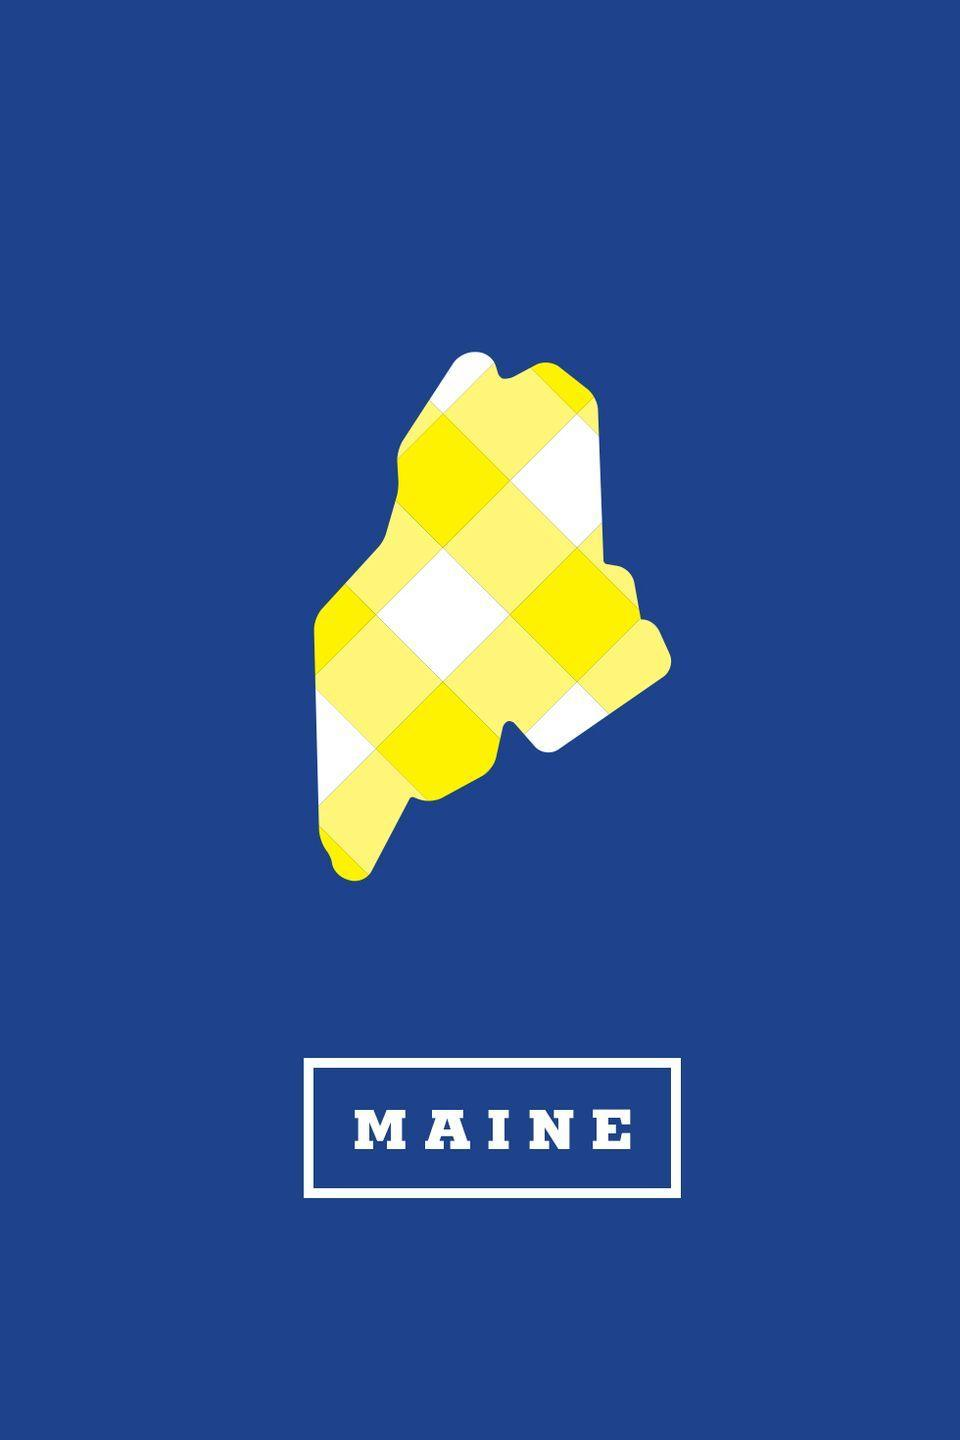 """<p>•You know Renys is the only store you'll ever need.</p><p>•You grew up <a href=""""http://www.countryliving.com/life/a35291/what-its-really-like-to-live-in-maine/"""" rel=""""nofollow noopener"""" target=""""_blank"""" data-ylk=""""slk:going to bean suppers"""" class=""""link rapid-noclick-resp"""">going to bean suppers</a> and searching for fiddleheads.</p><p>•You say """"wicked"""" instead of """"very"""" or """"really"""".</p>"""